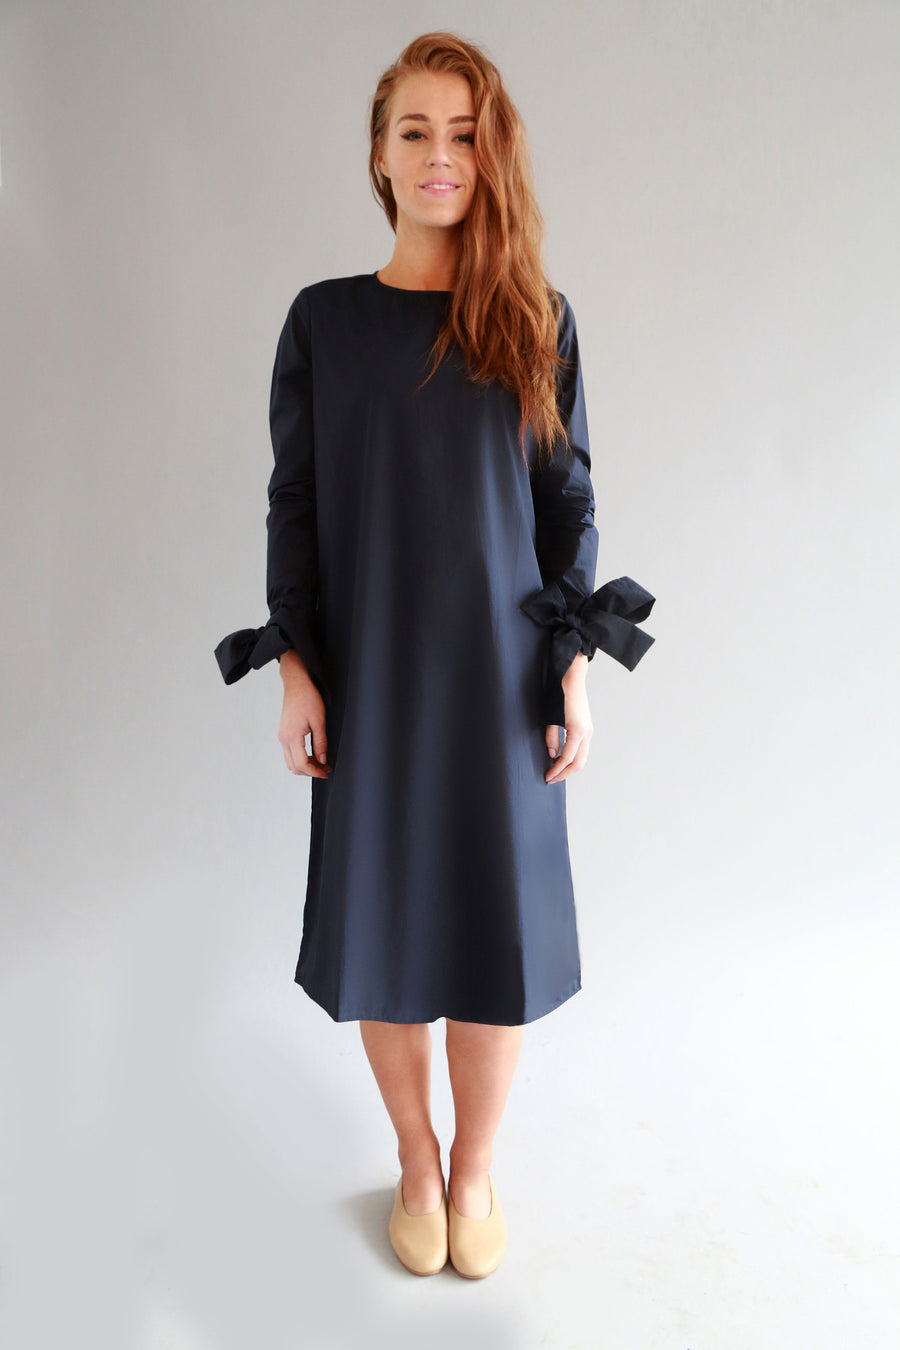 NAVY SARA DRESS - SOLIKA